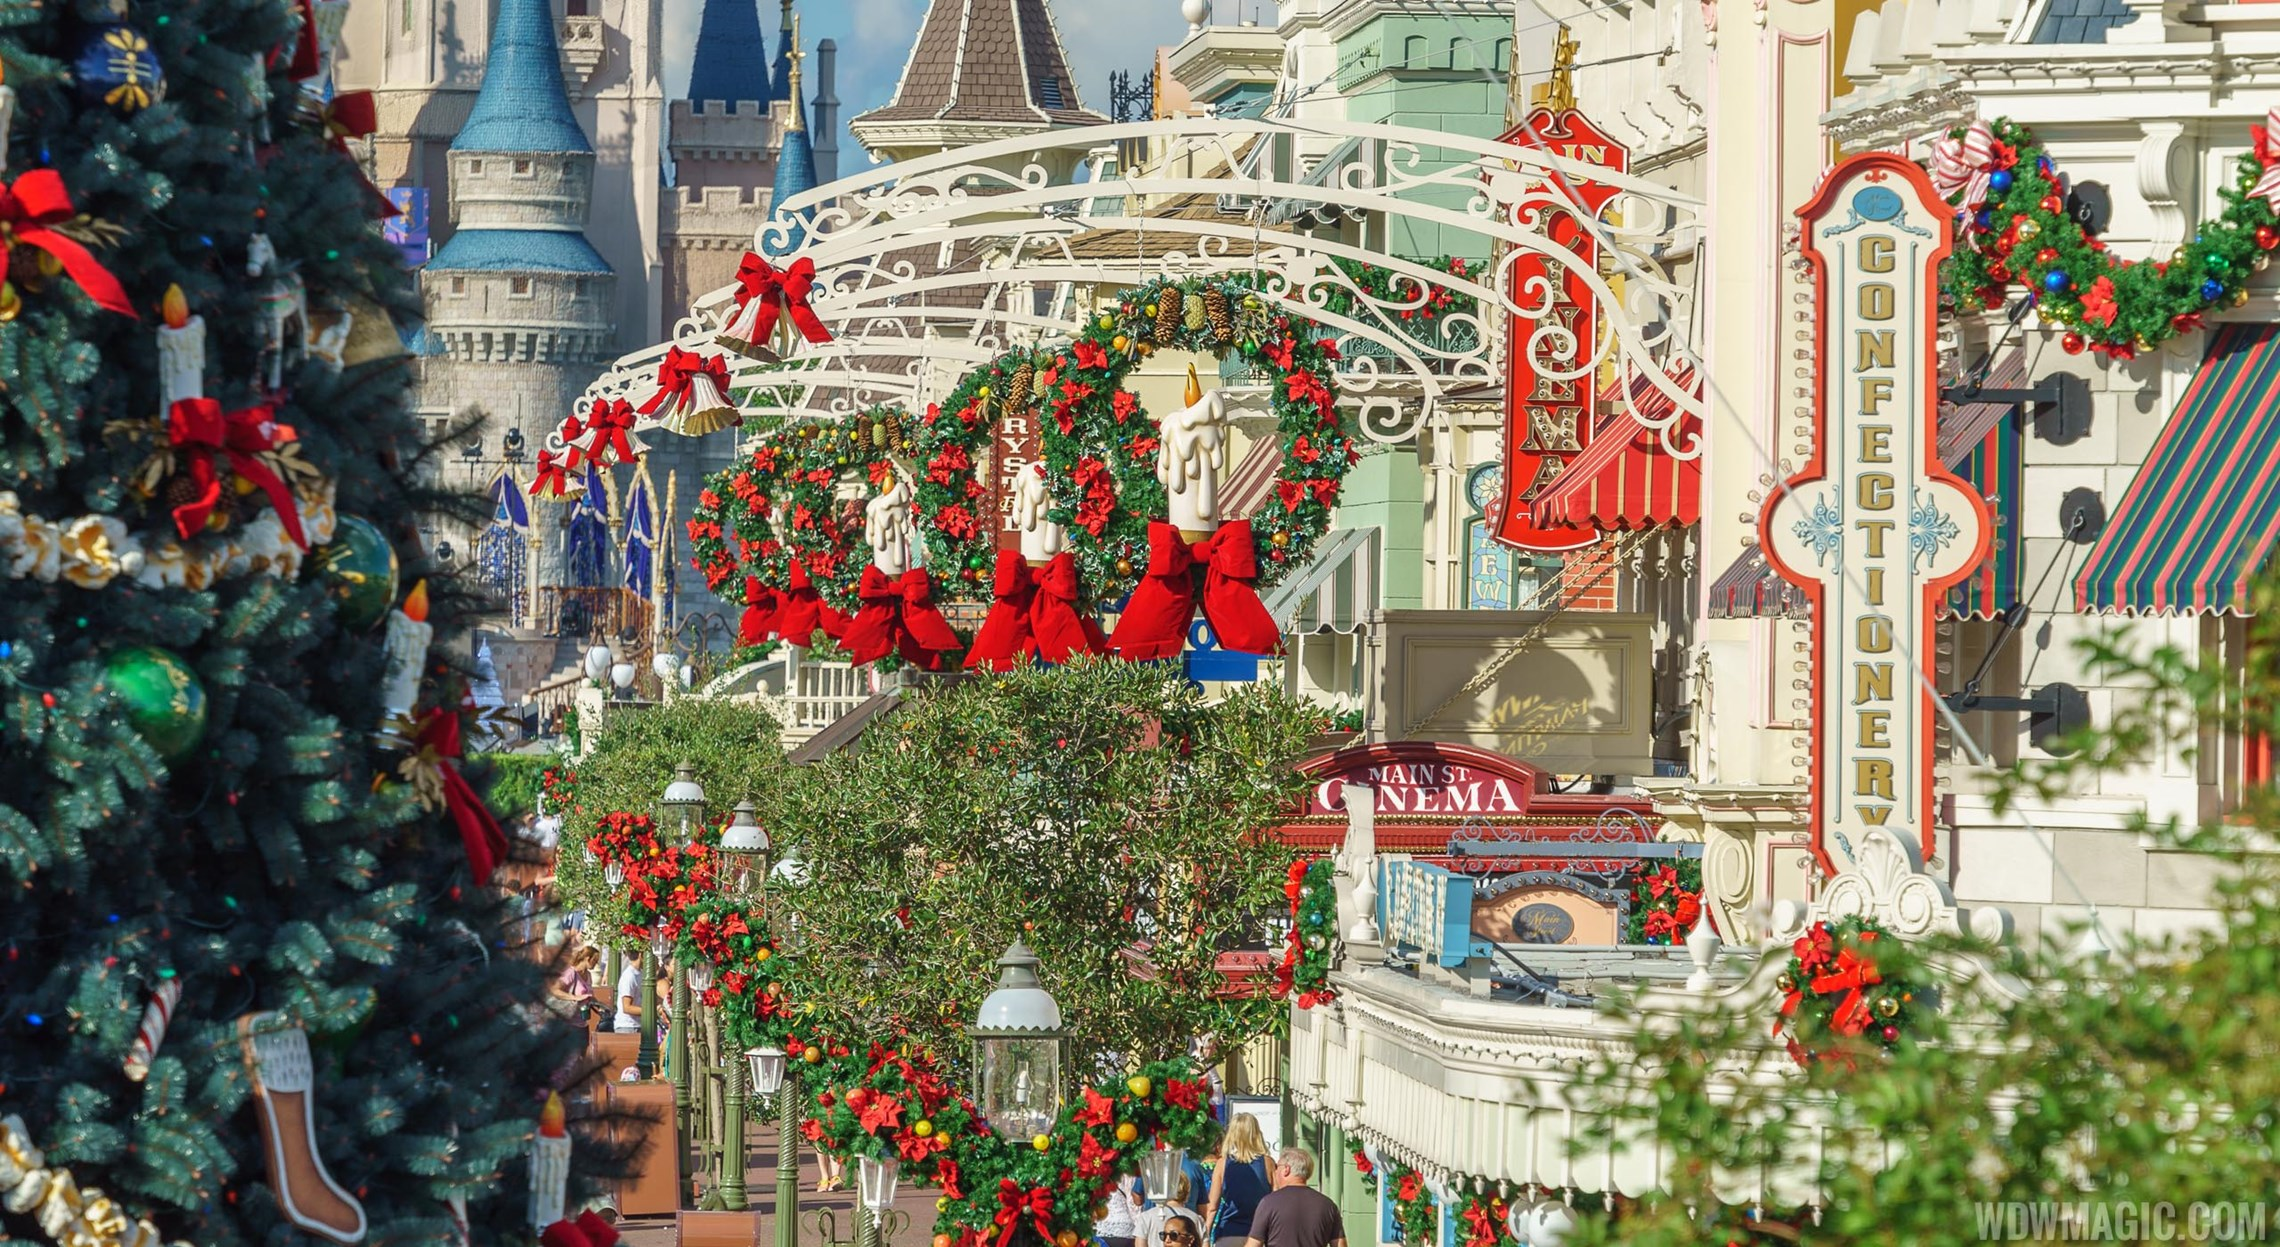 The Magic Kingdom's 2017 Christmas Holiday Decor